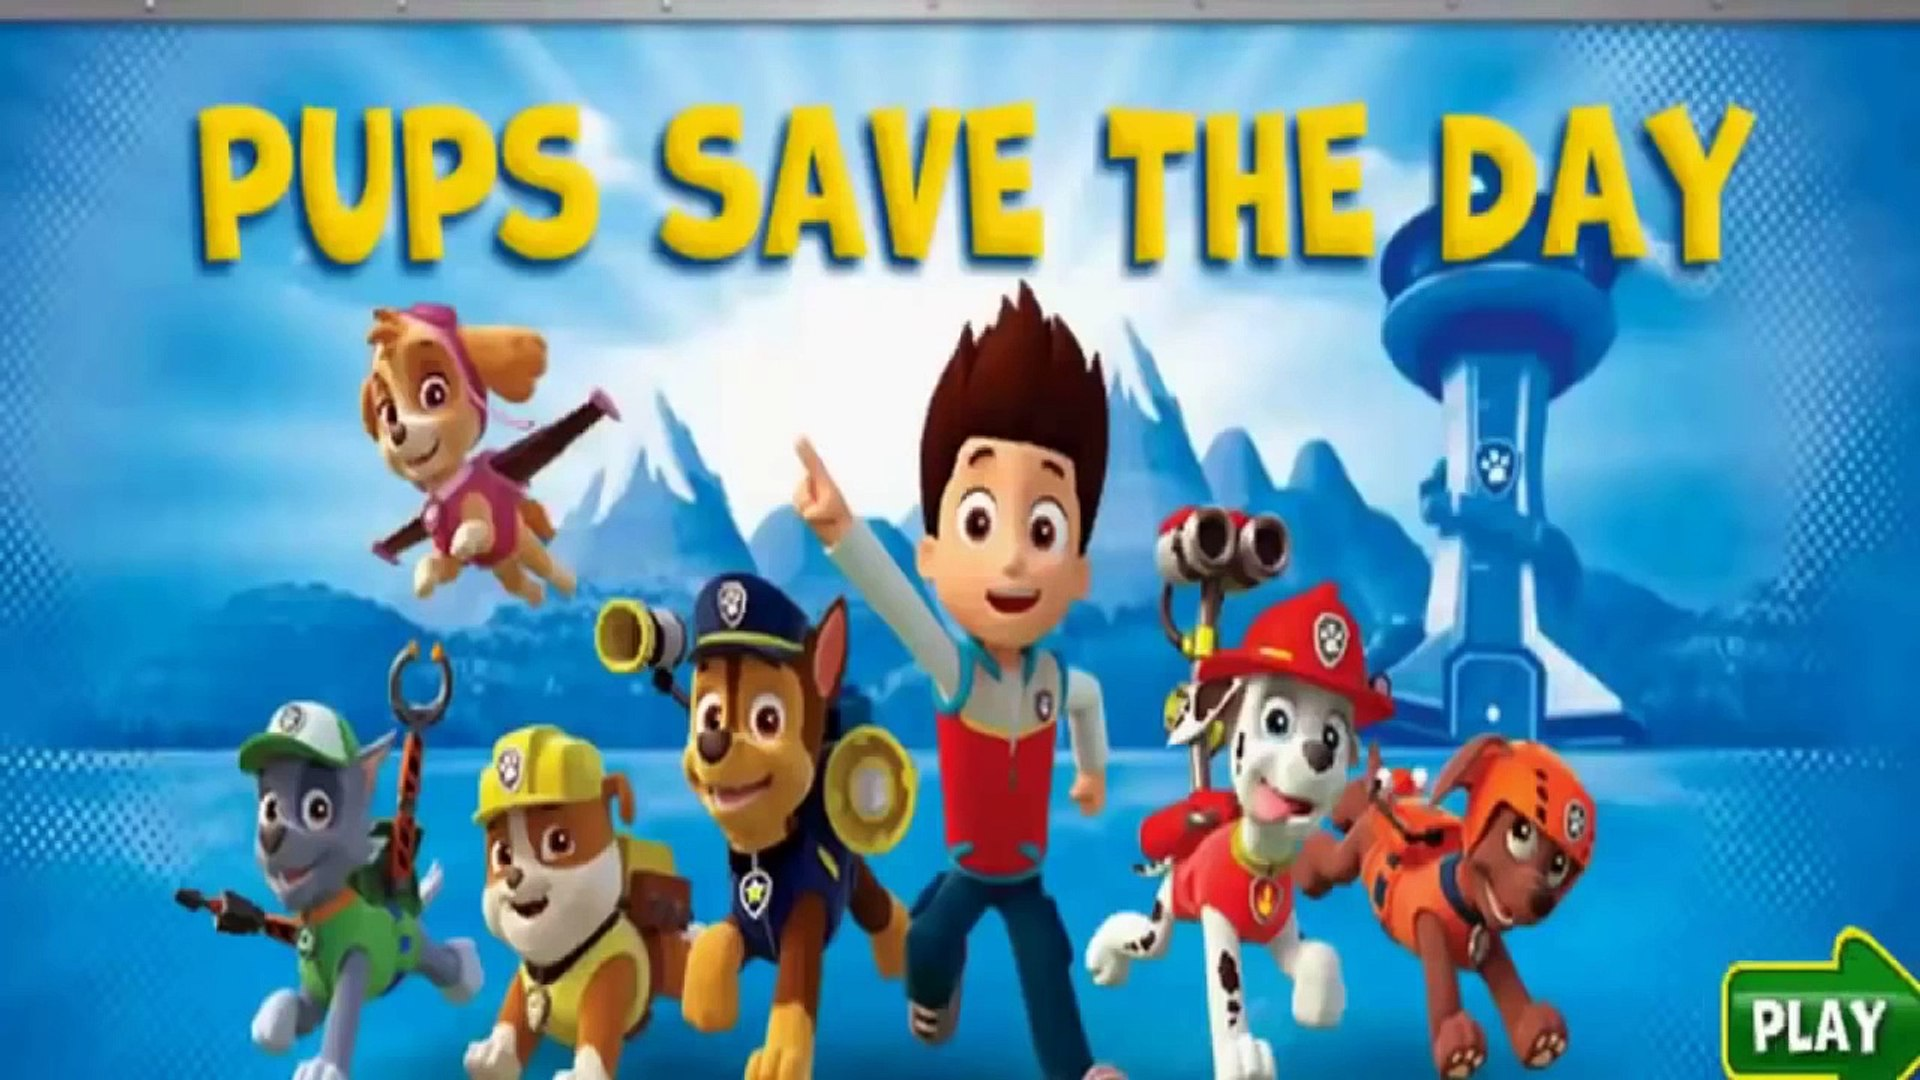 Paw Patrol Hd Full Episodes - Paw Patrol Cartoon Episodes In English_ Full game for Children part 1